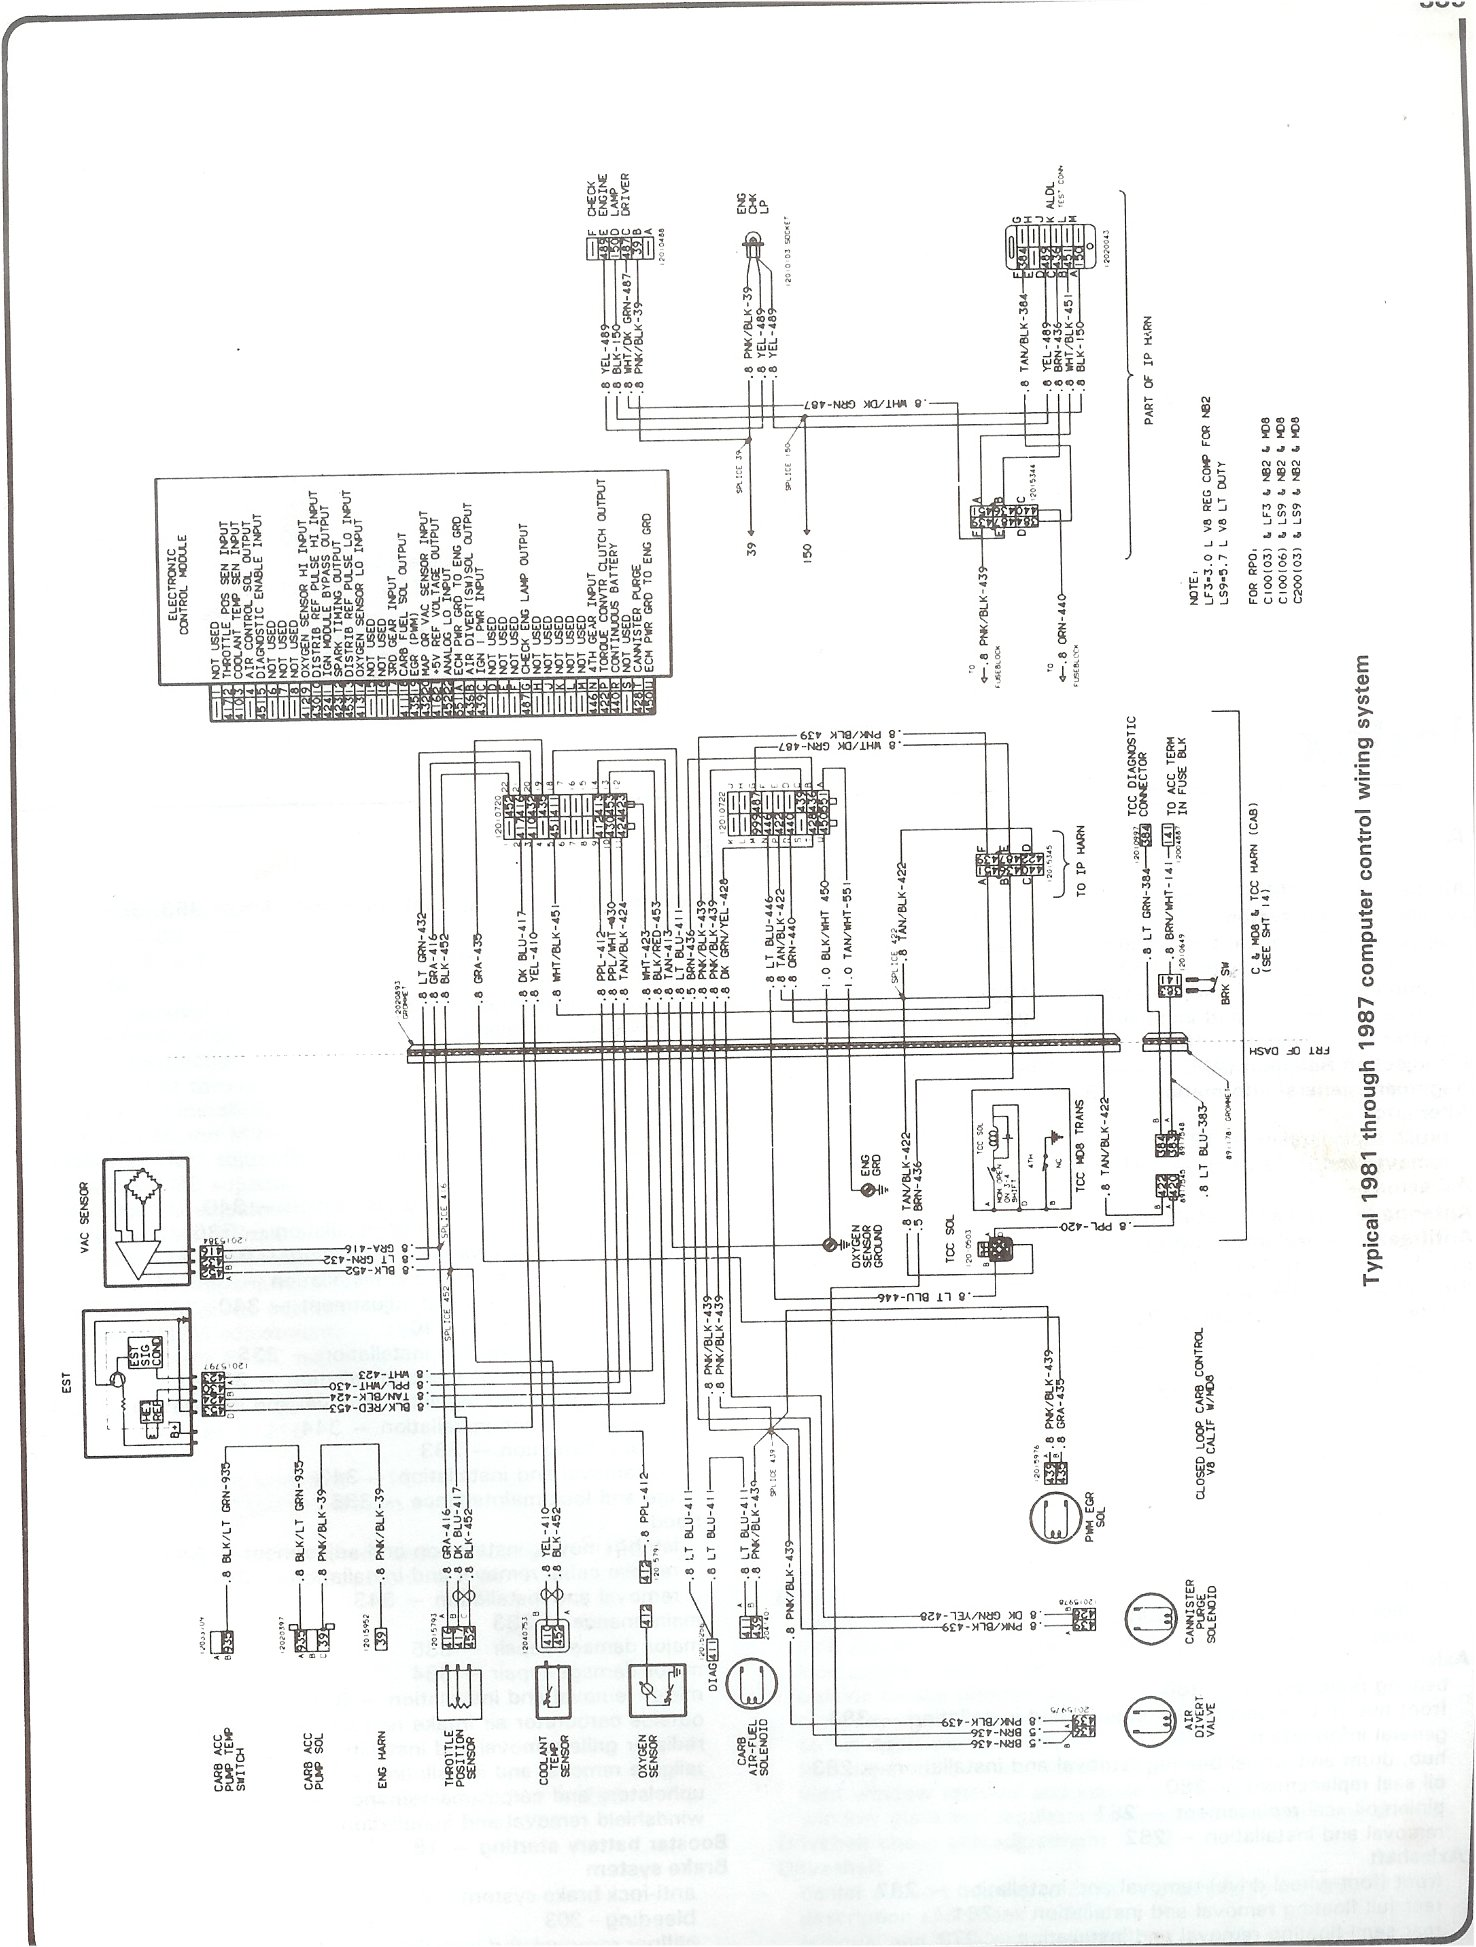 81 87_computer_control_wiring complete 73 87 wiring diagrams 1975 c10 wiring diagram at cos-gaming.co